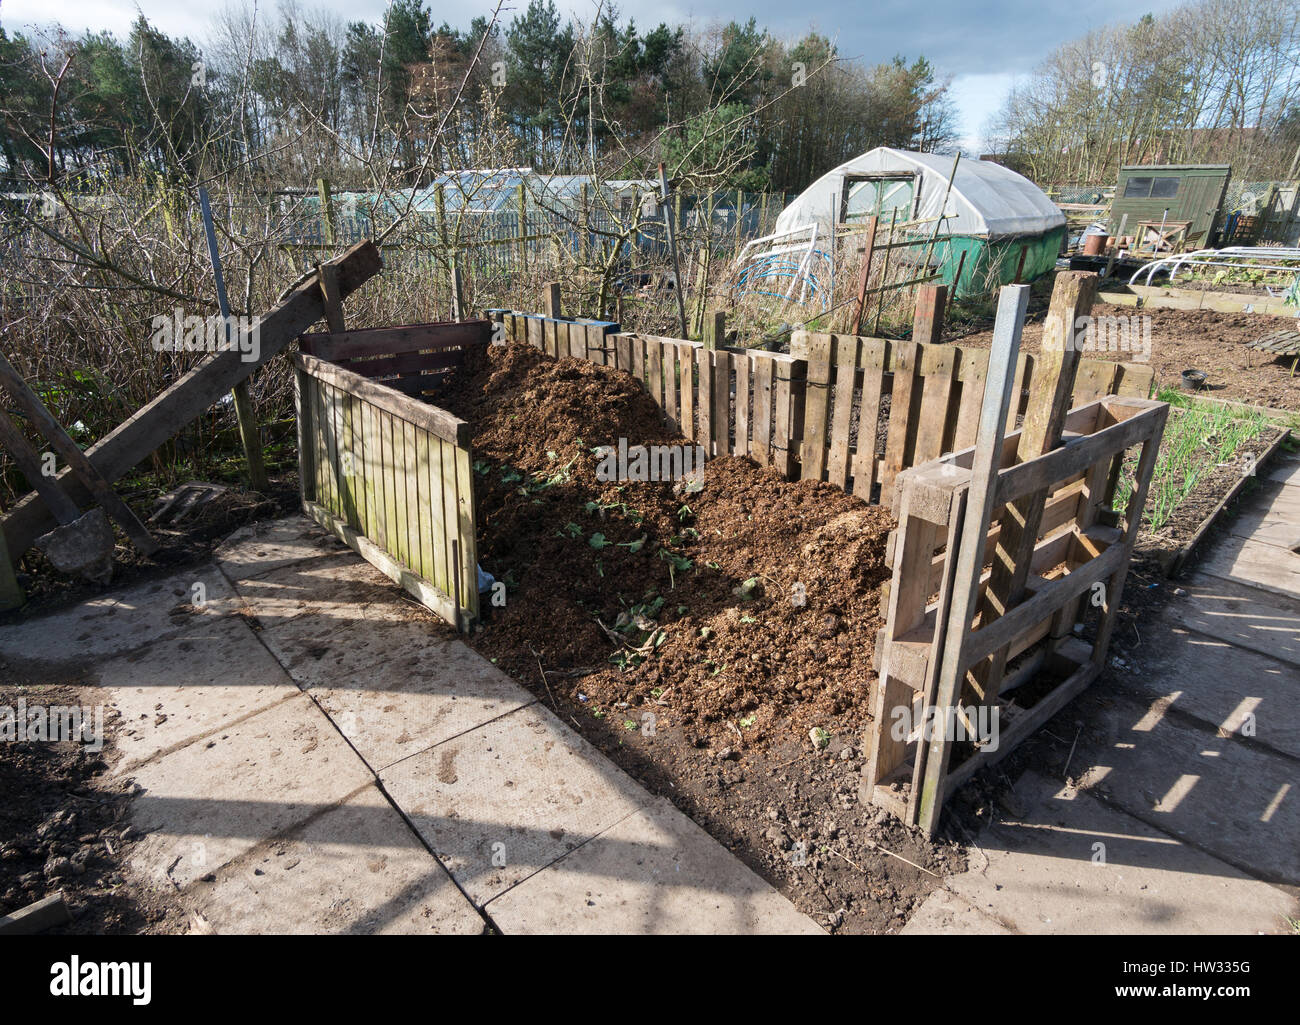 An allotment compost bin made from recycled pallets. Stock Photo